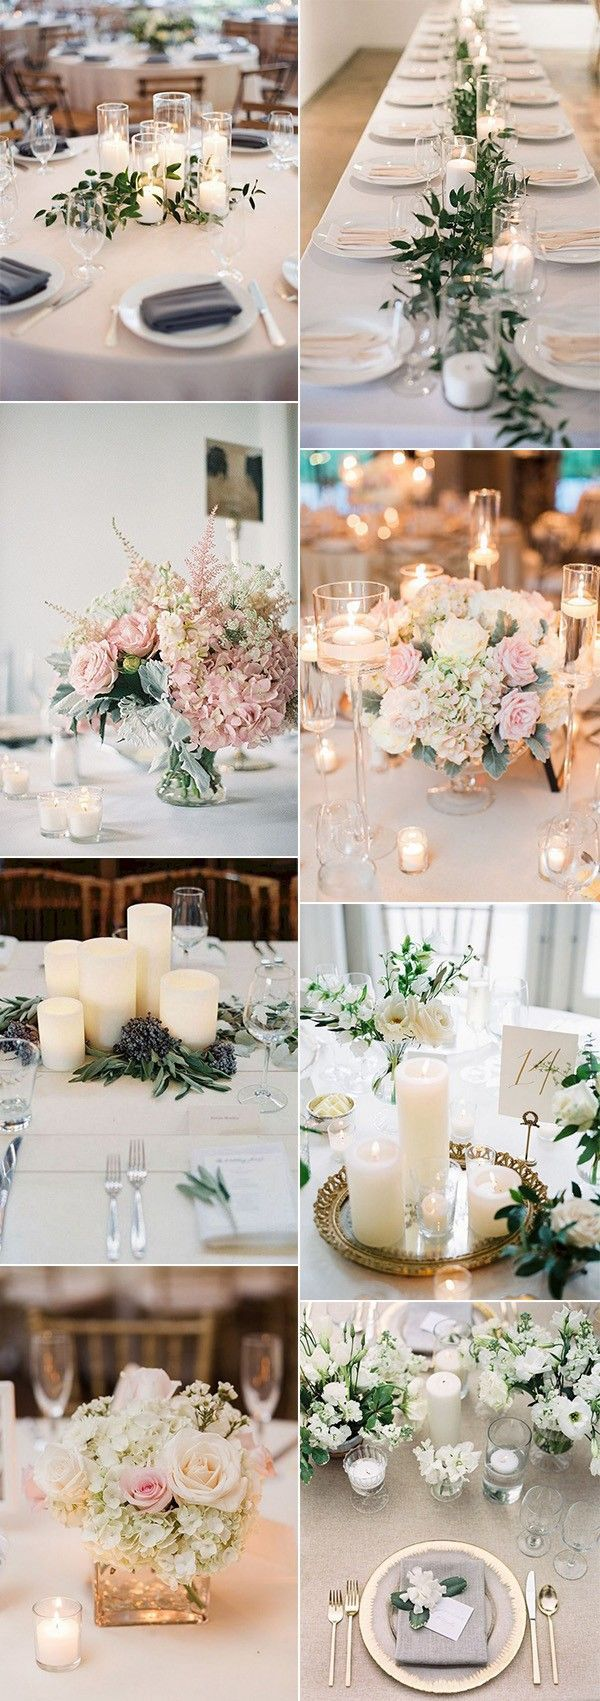 trending elegant wedding centerpiece ideas for 2018 trends #elegantwedding #weddingdecor #weddingcenterpieces #weddingreception